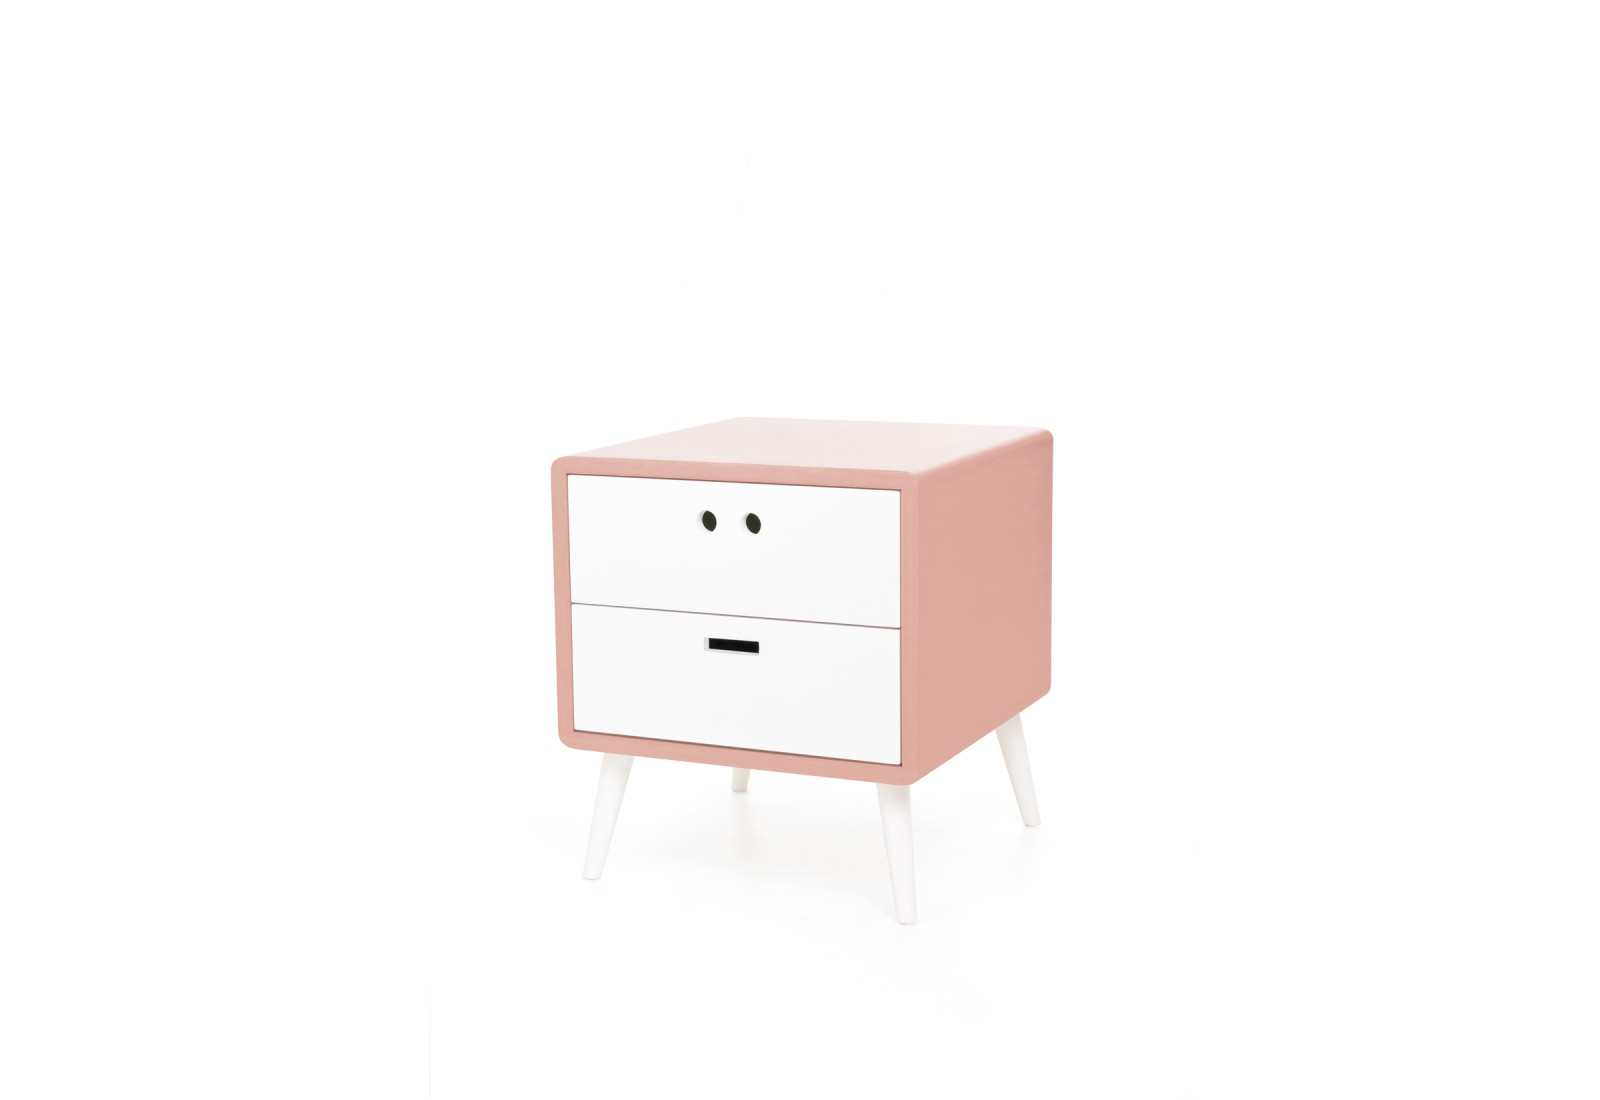 Mário Bedside Table Retro Pink